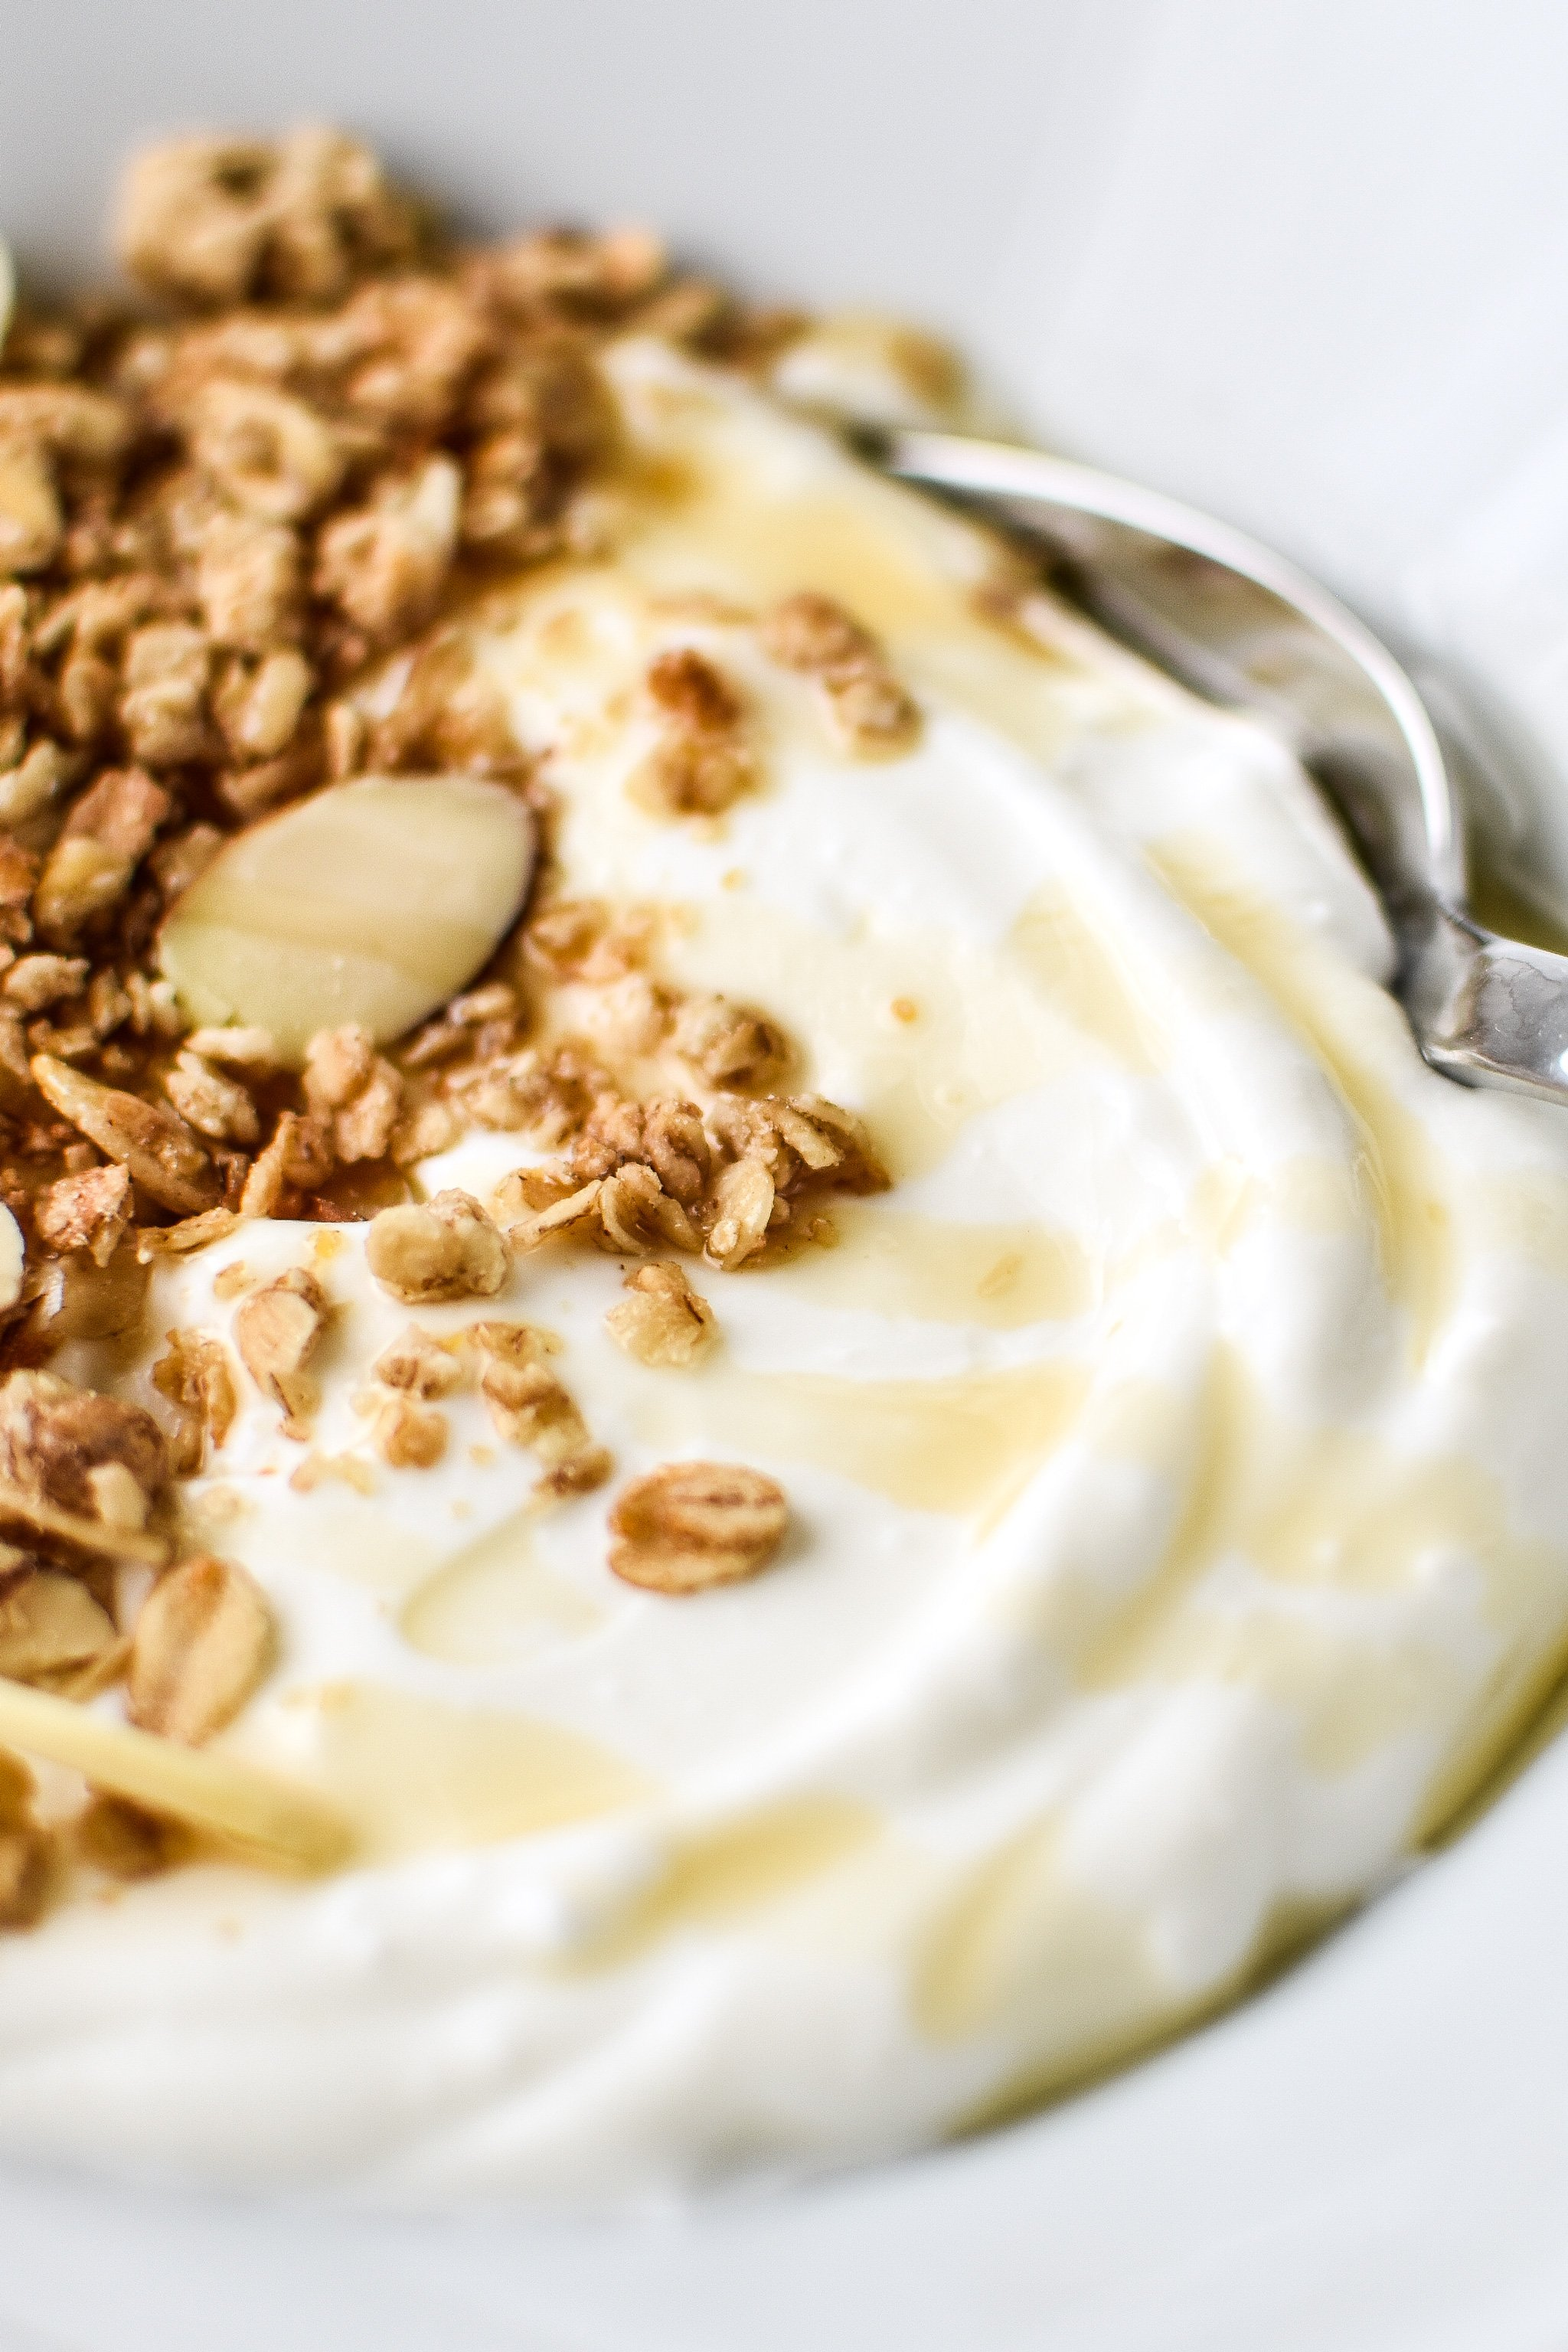 Freshly made yogurt with granola and a light maple syrup drizzle.